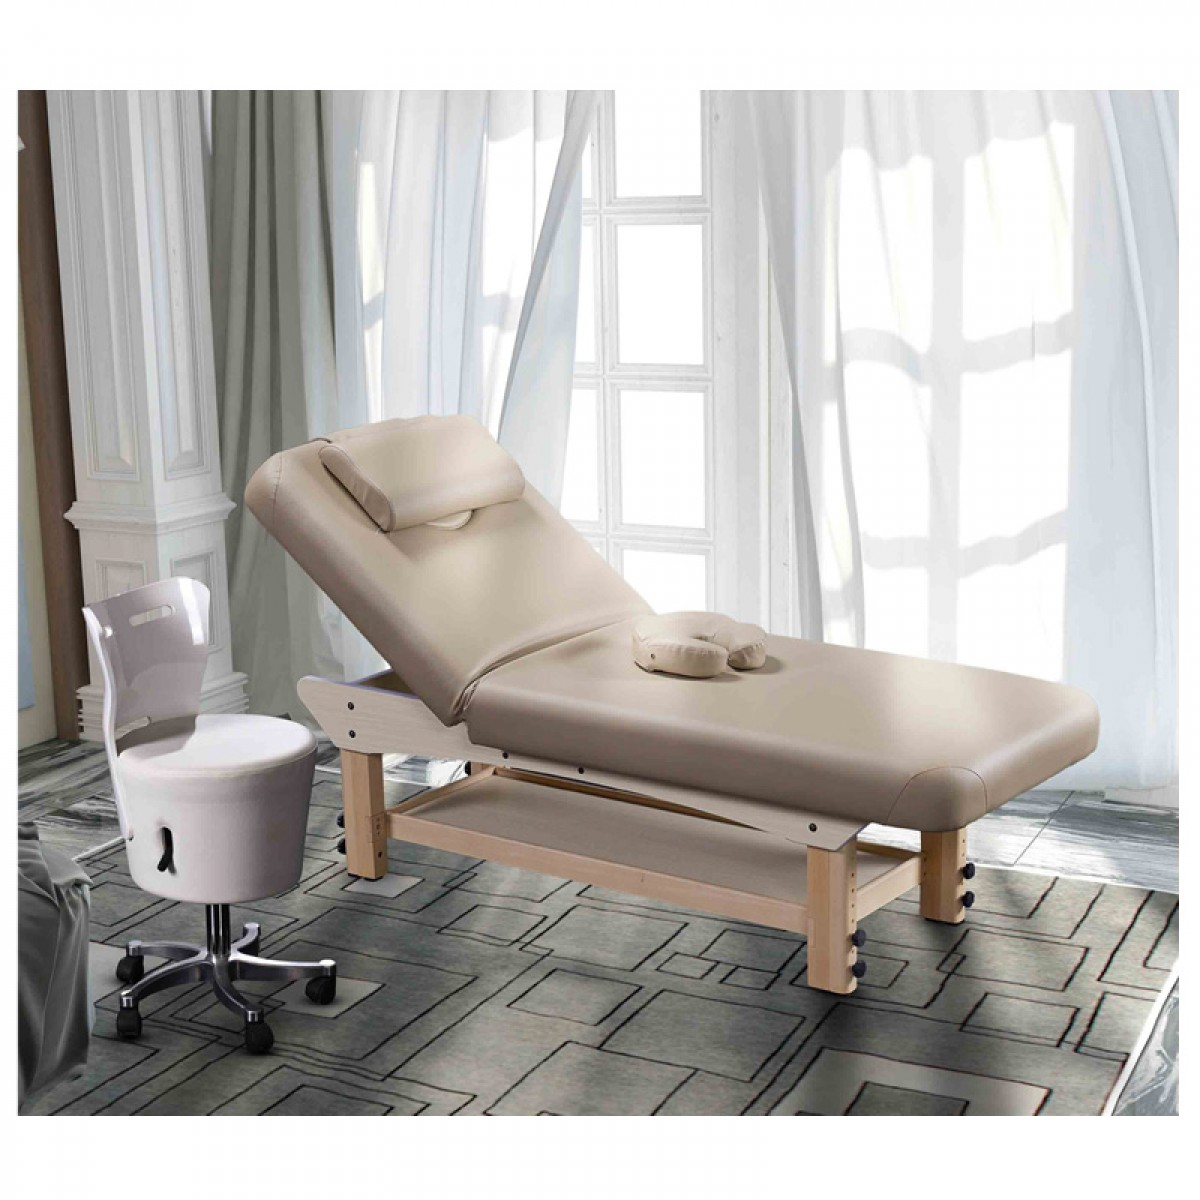 China Wholesale Solid Wooden Thai Massage Bed High Quality Adjustable Full Body Beauty Massage Table With Storage